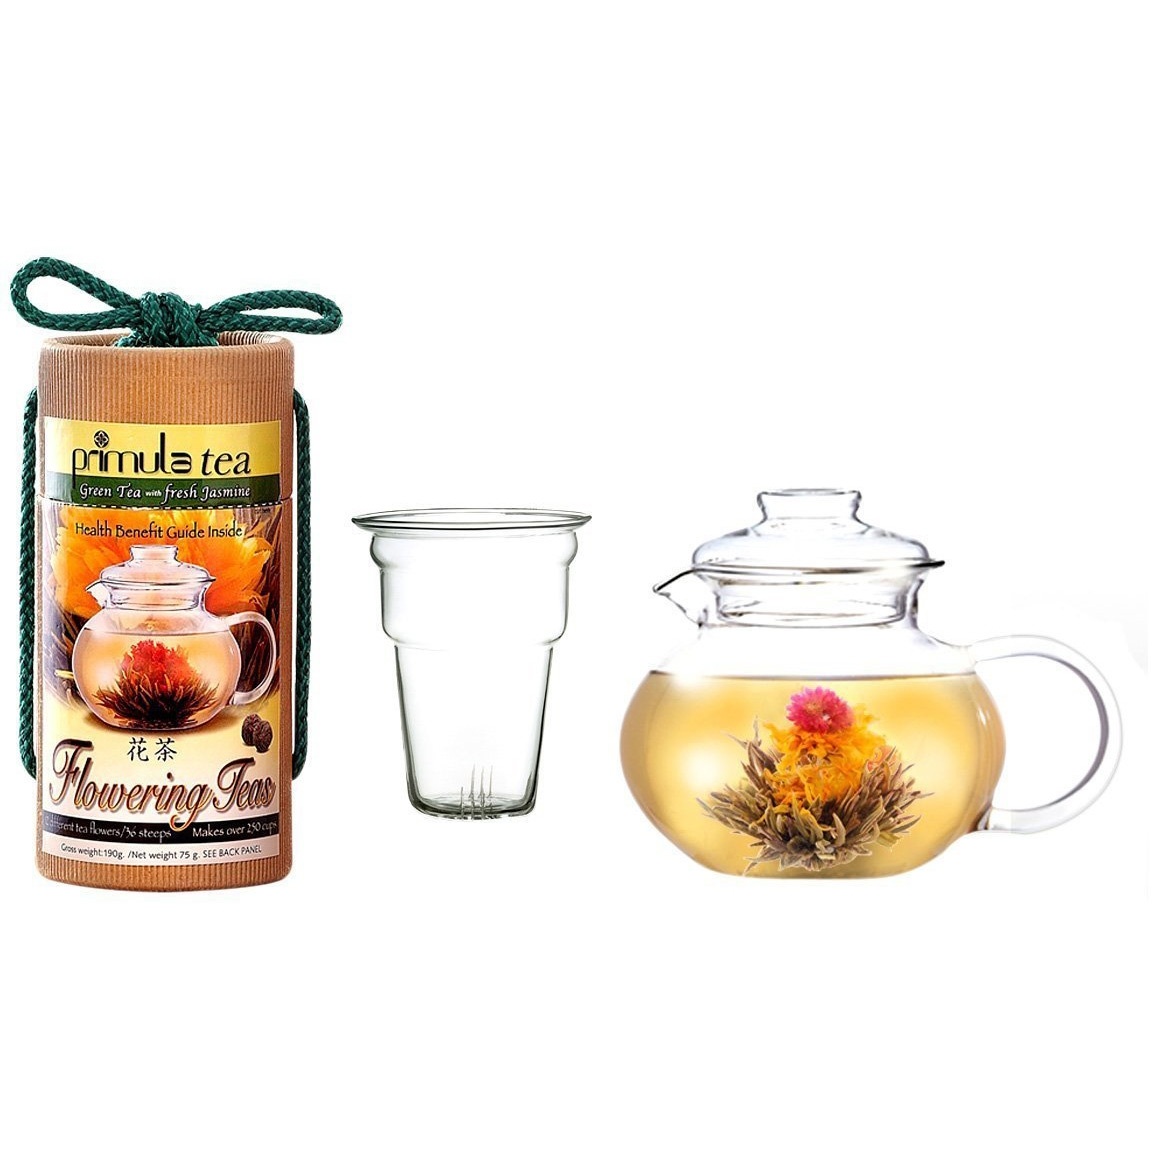 Take a moment to enjoy some of life's simple pleasures and enjoy a unique tea time with this Flowering Tea Set with 40-oz Stove Top Clear Glass Pot Kettle and Infuser, which includes a 40-ounce clear glass tea pot and a canister of flowering teas containing 12 different green tea flowers with jasmine flavor. The durable tea pot holds 5 cups of liquid (40 ounces) and is made out of hand-blown borosilicate glass--the same glass used in laboratories. It is both strong and resistant to temperature extremes, and is also microwave and dishwasher safe. Simply add loose tea in the included infuser and pour through hot water. Removing the infuser is the ideal way to watch Primula's flowering teas in bloom and make tea. Rather than use tea bags, Primula flowering teas are made by artisans in China and are comprised of hand sewn AA grade Green Tea with all natural flowers. The green tea is blended 5 times with jasmine to make for an aromatic scent. The flowers come in a sealed foil with a 2-1/2-year shelf life, and each flower can be used three times within a 24 hour period. Since the tea pot holds 5 cups of tea, each flower can make 15 cups. All of Primula Flowering Teas are made from the finest all natural tea leaves, but it is not certified organic, and it is inspected and certified by CIQ, a special Chinese governing agency that works with the approval of the FDA.